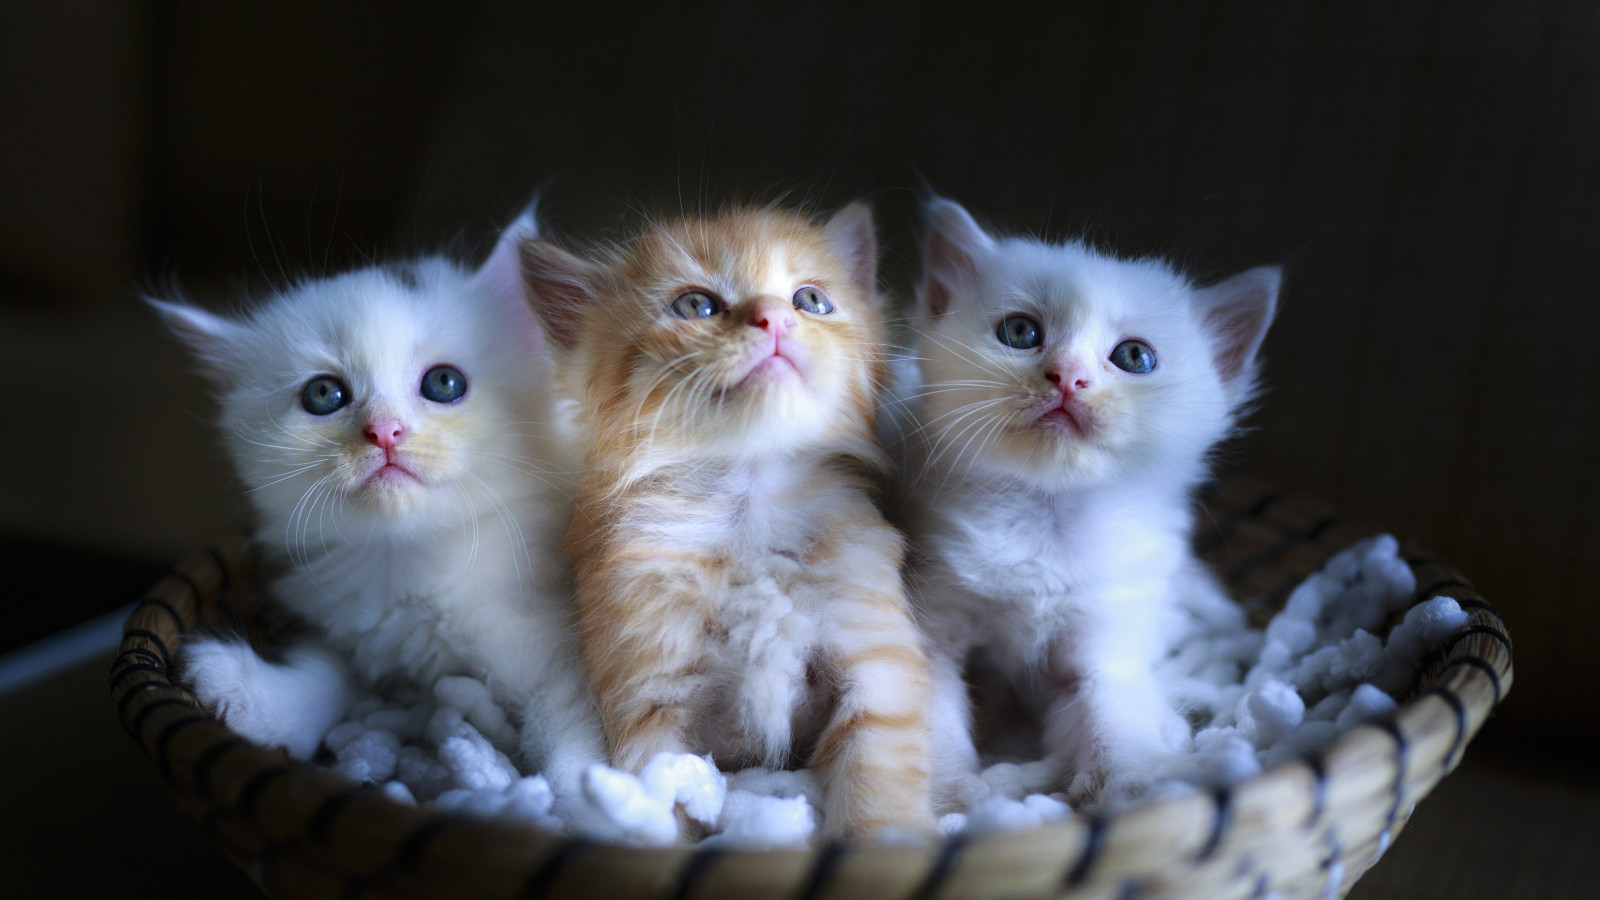 Three cute kittens | 1600x900 wallpaper